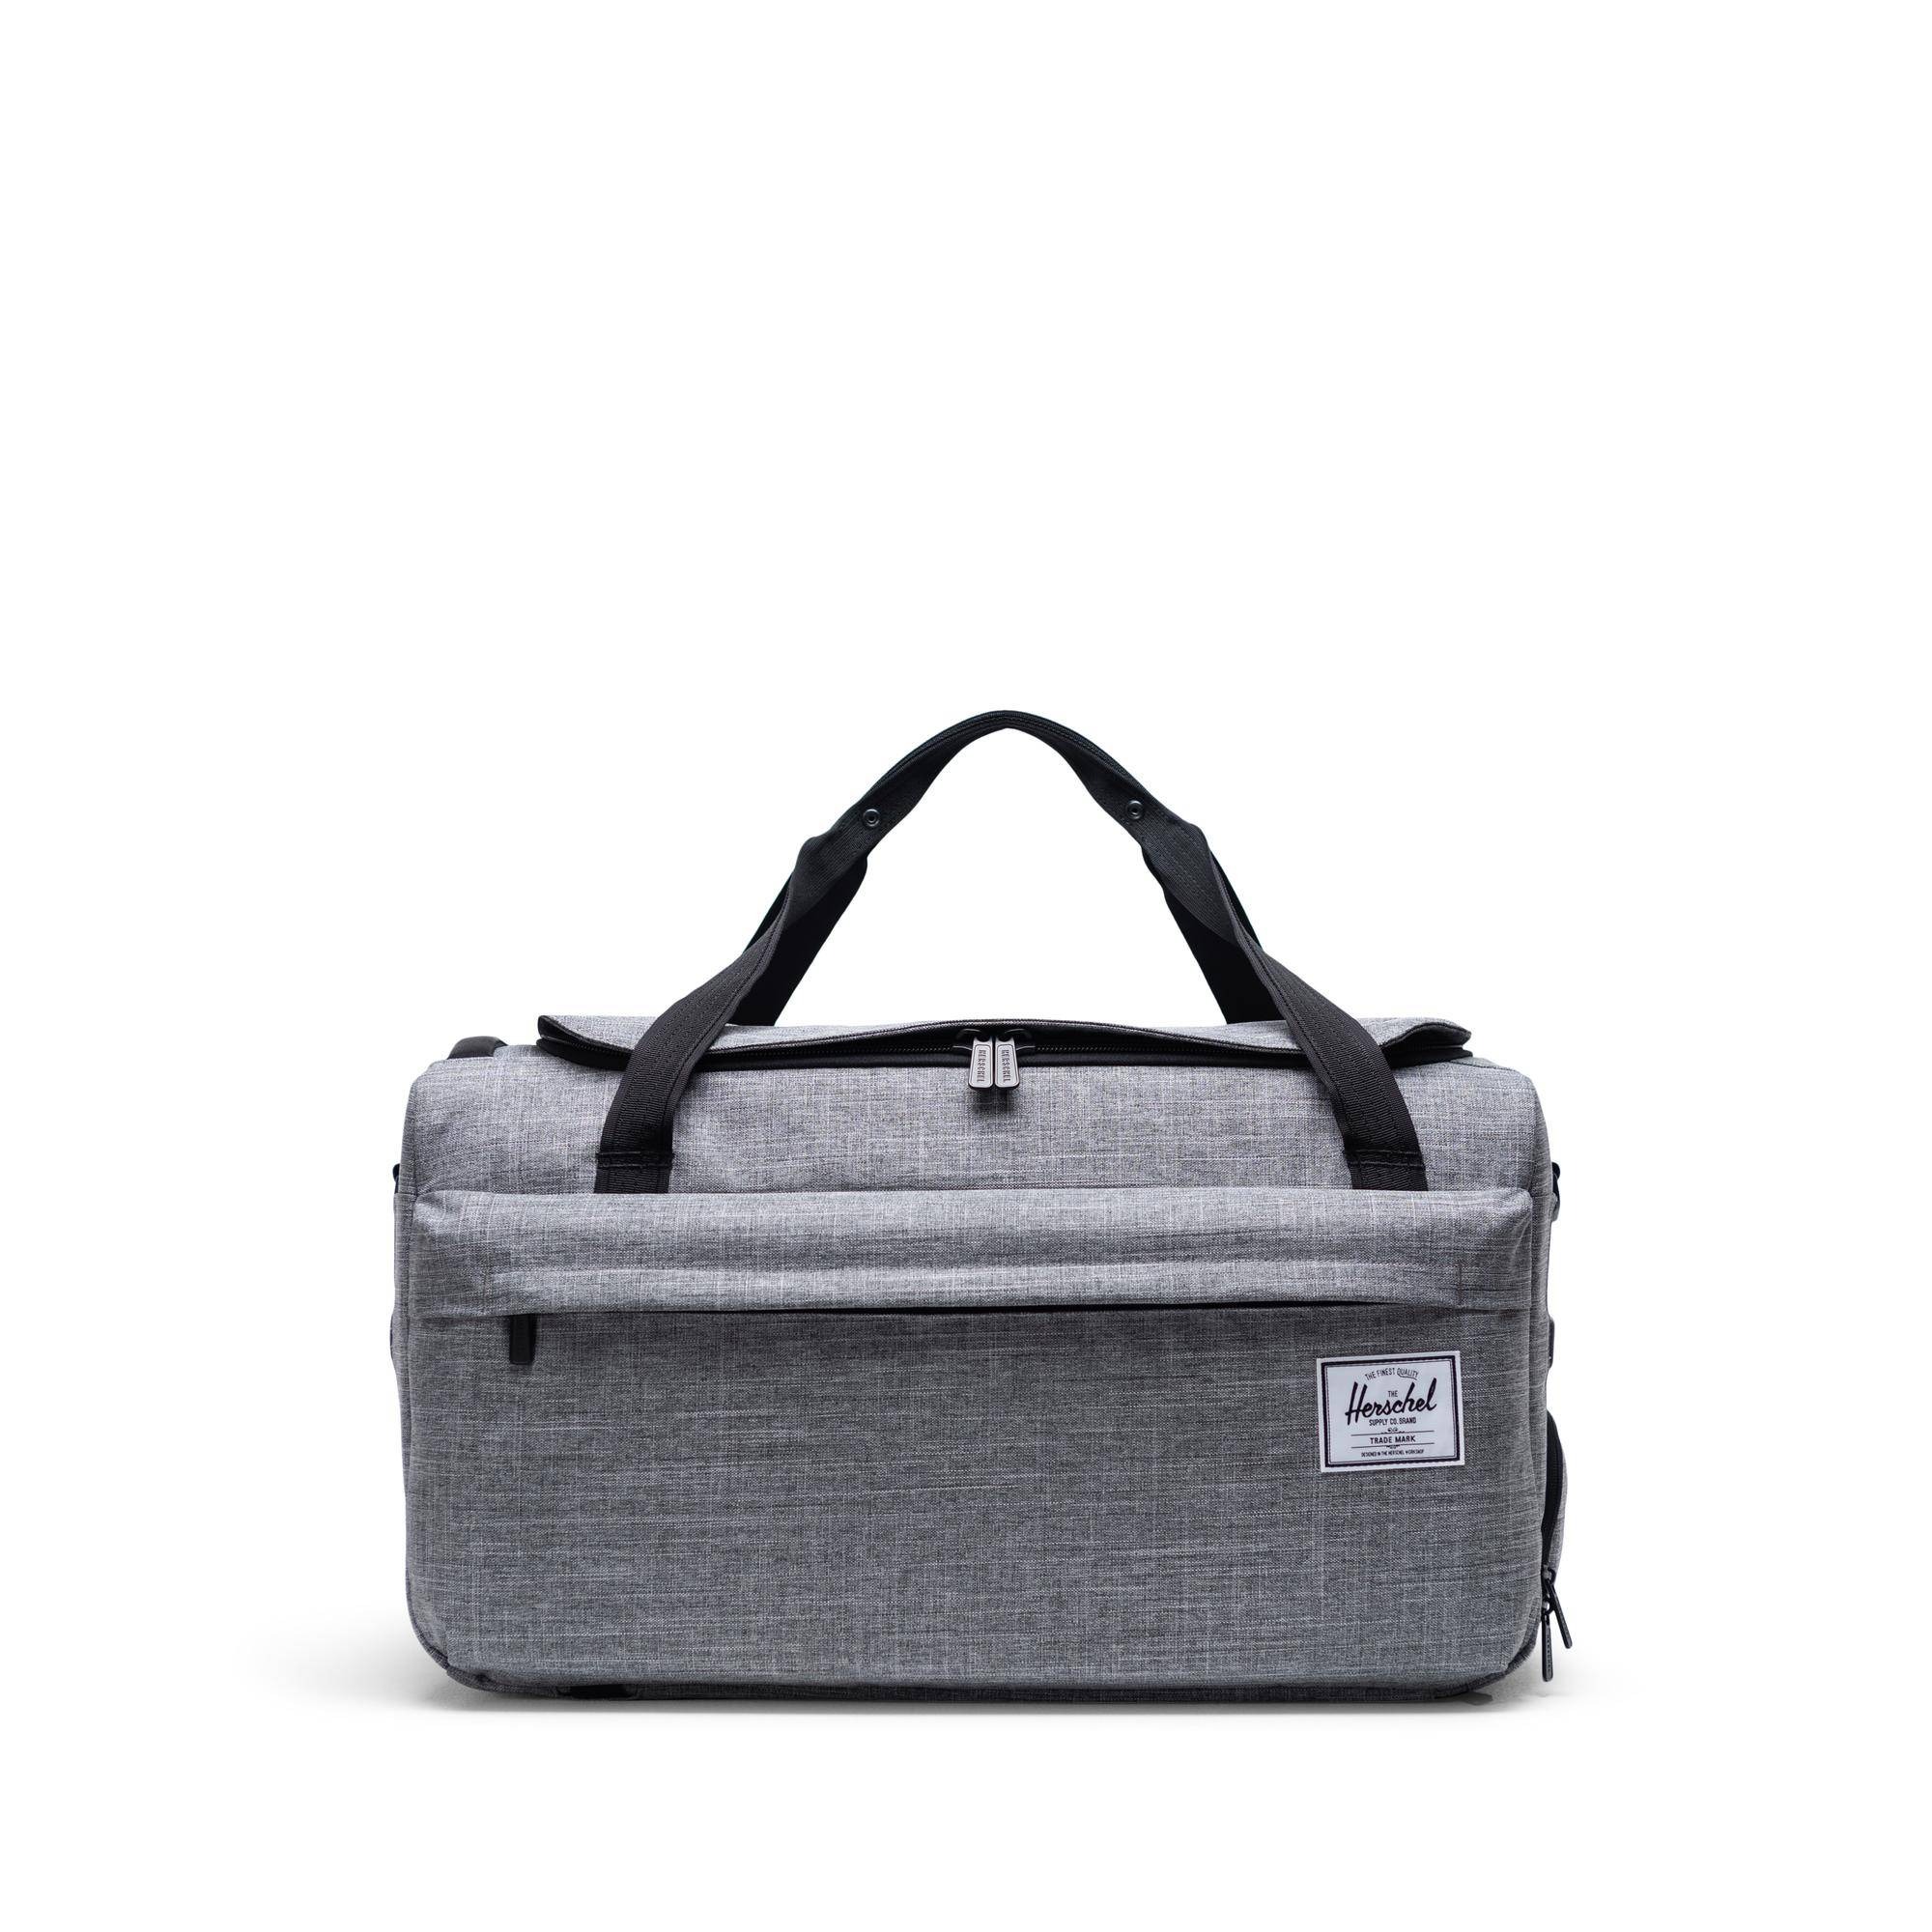 Outfitter Luggage   50L -Raven Crosshatch